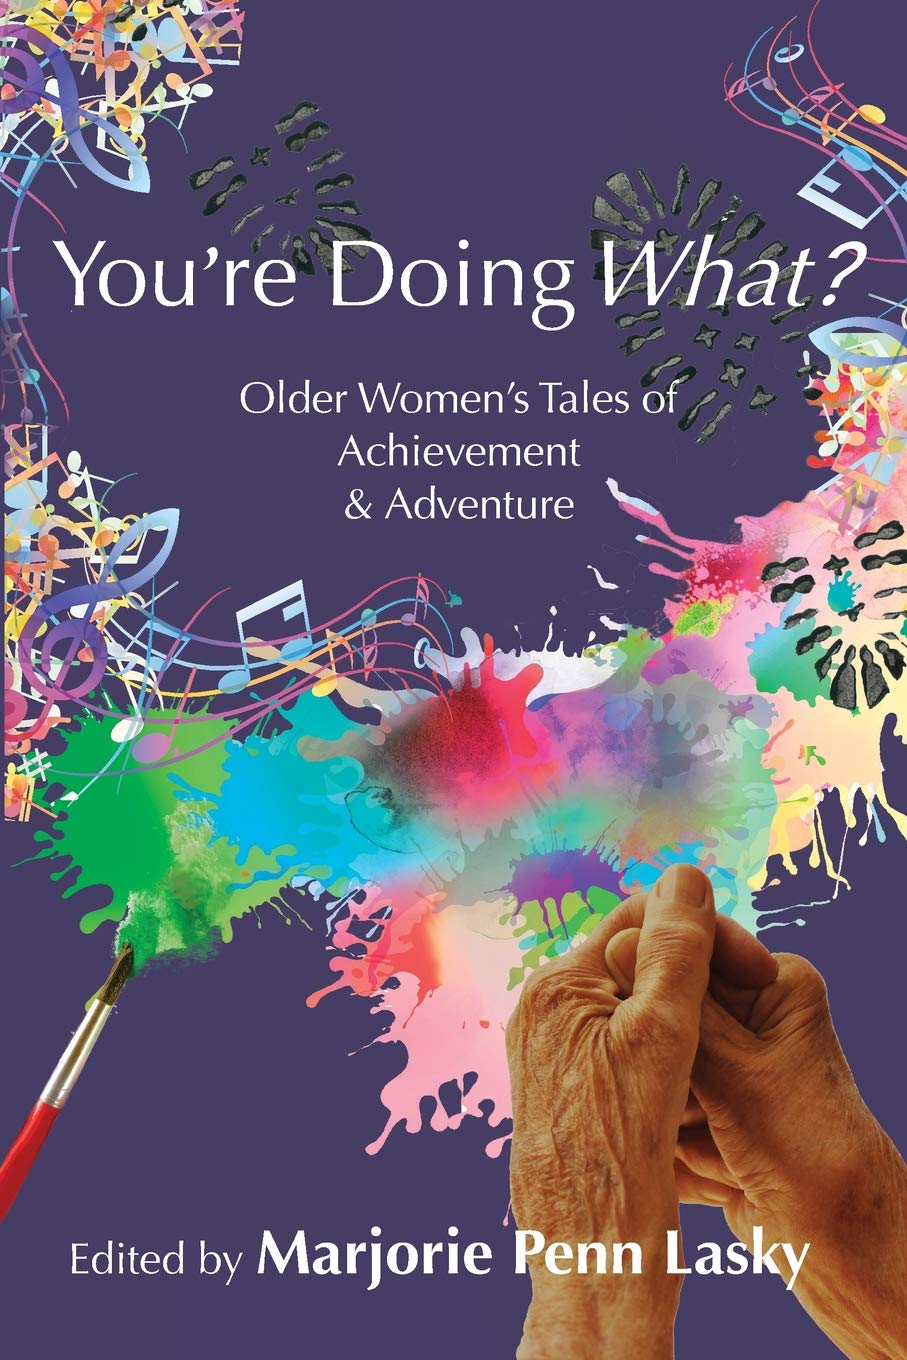 You're Doing What? Older Women's Tales